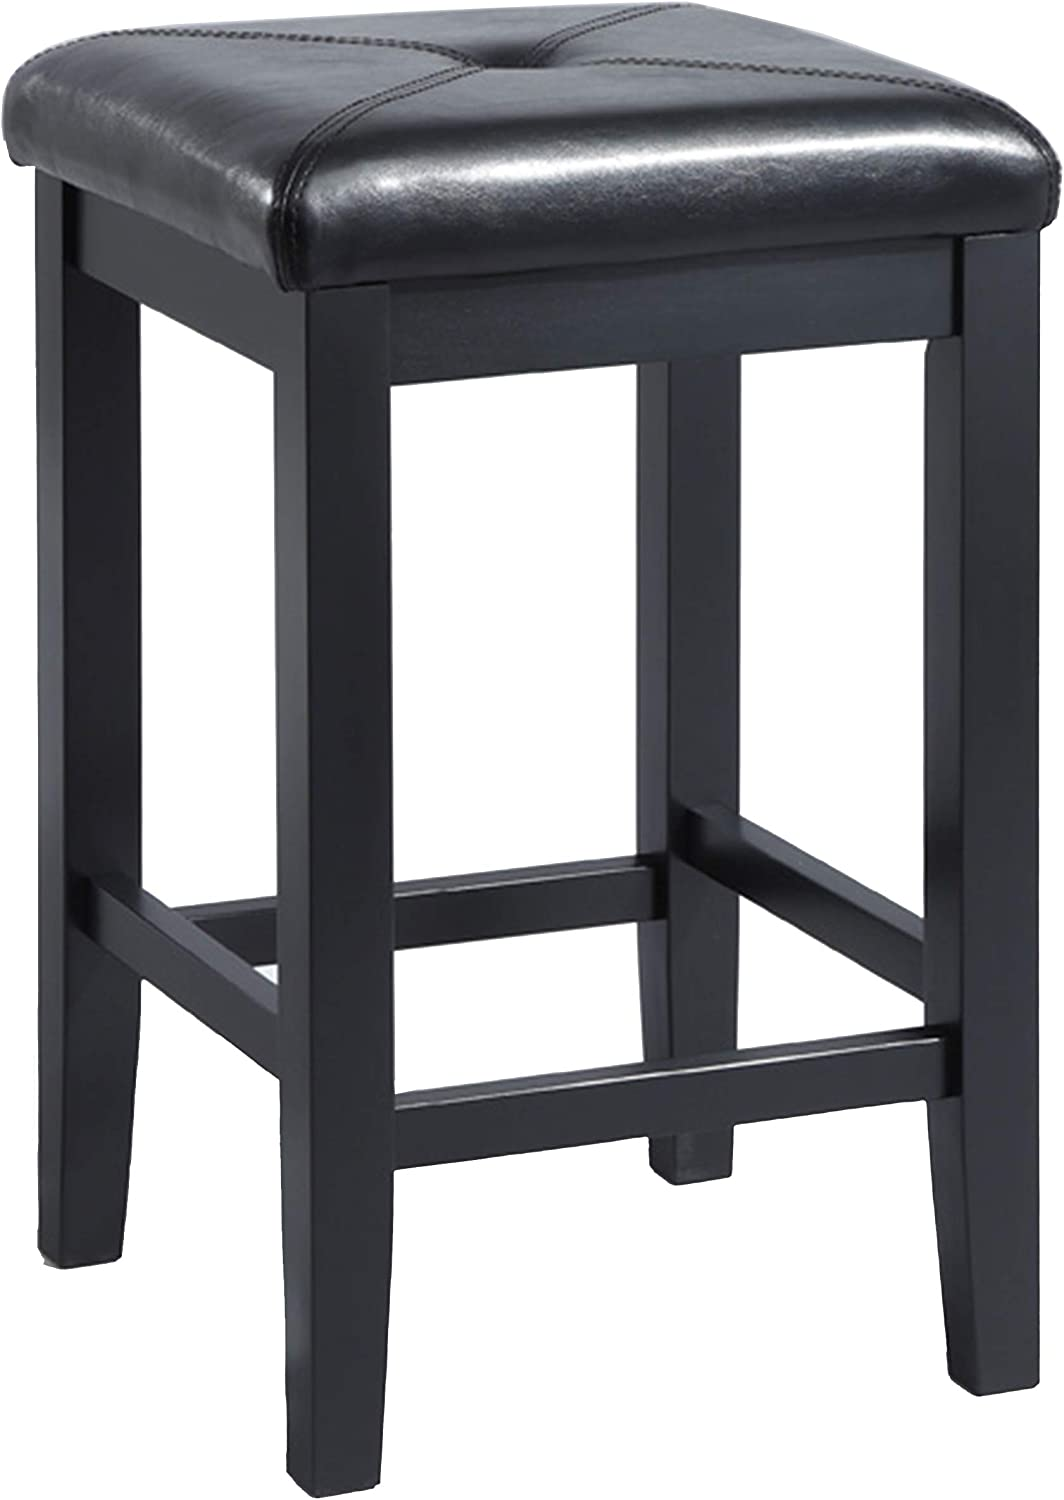 Crosley Furniture CF500524-BK Upholstered Square Seat Bar Stool (Set of 2), 24-inch, Black